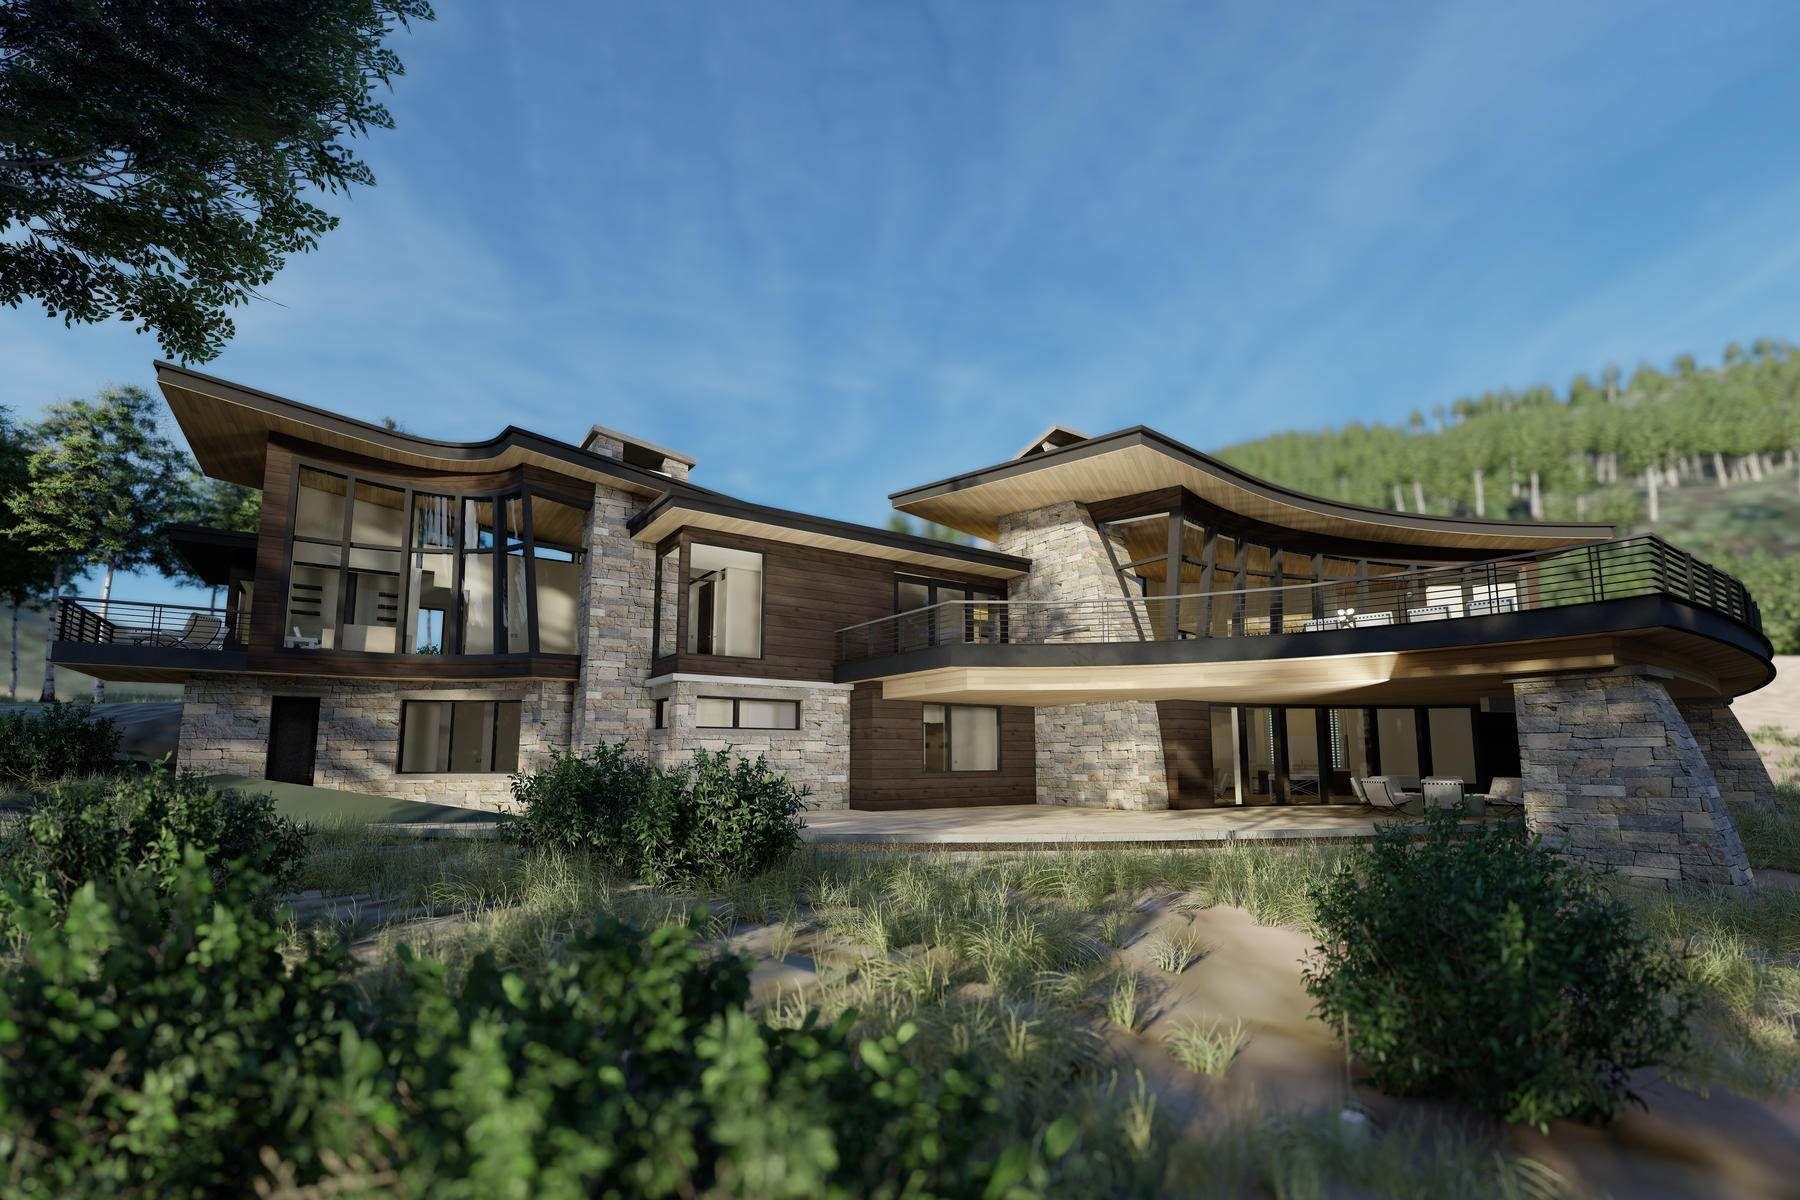 Single Family Homes pour l Vente à Luxury Has a New Address 256 White Pine Canyon Rd, Park City, Utah, 84060 États-Unis